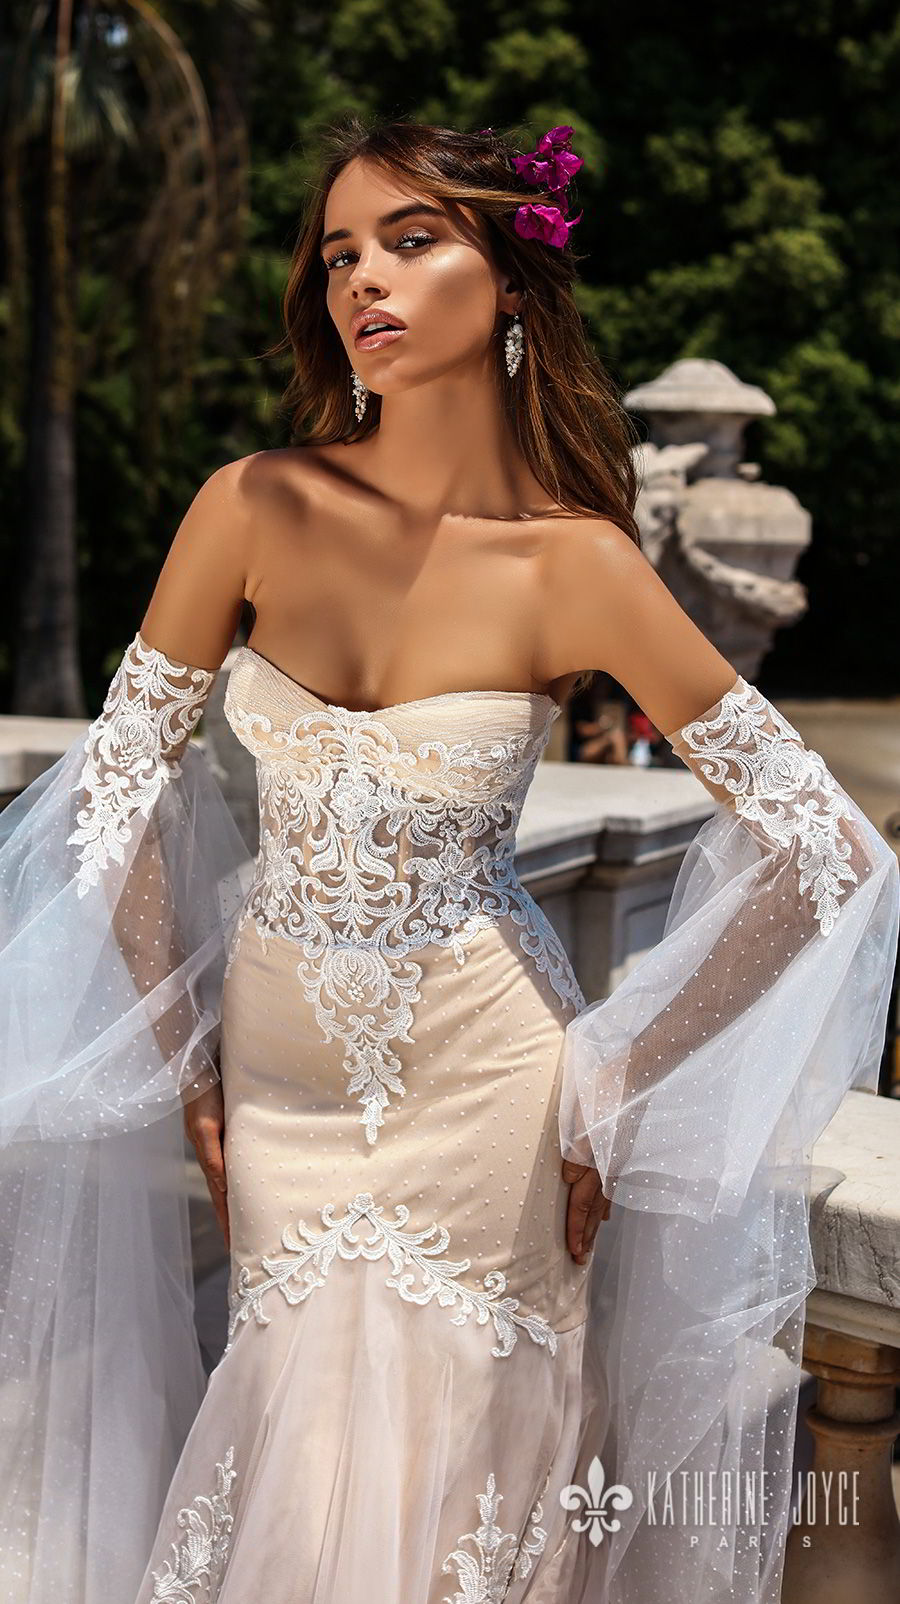 katherine joyce 2018 bridal long sleeves strapless sweetheart neckline heavily embellished bodice elegant sexy ivory fit and flare wedding dress chapel train (leticia) zv